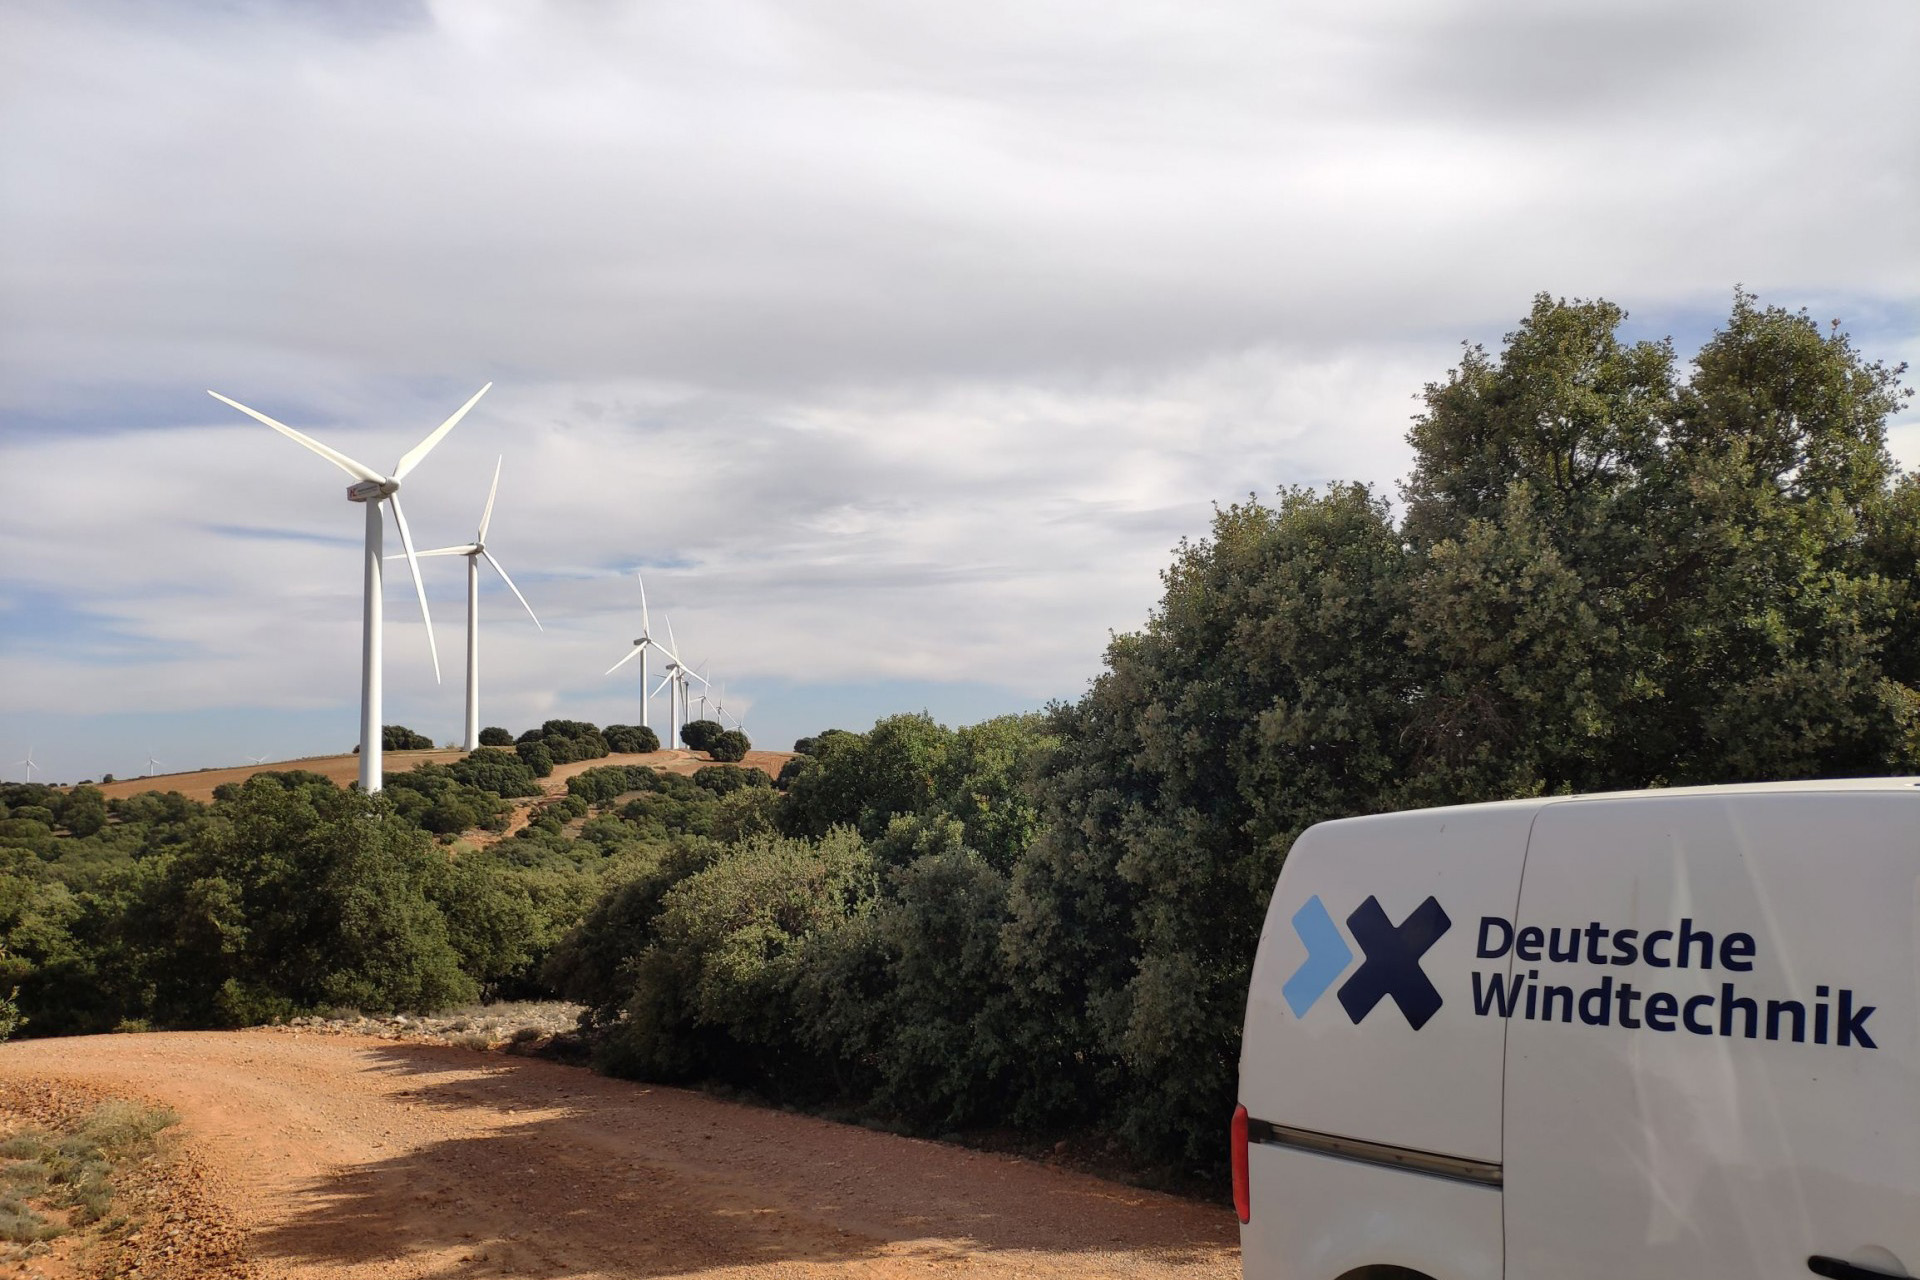 Spanish survey on wind turbine maintenance services shows that ISPs achieve the best results – Deutsche Windtechnik gets excellent rating